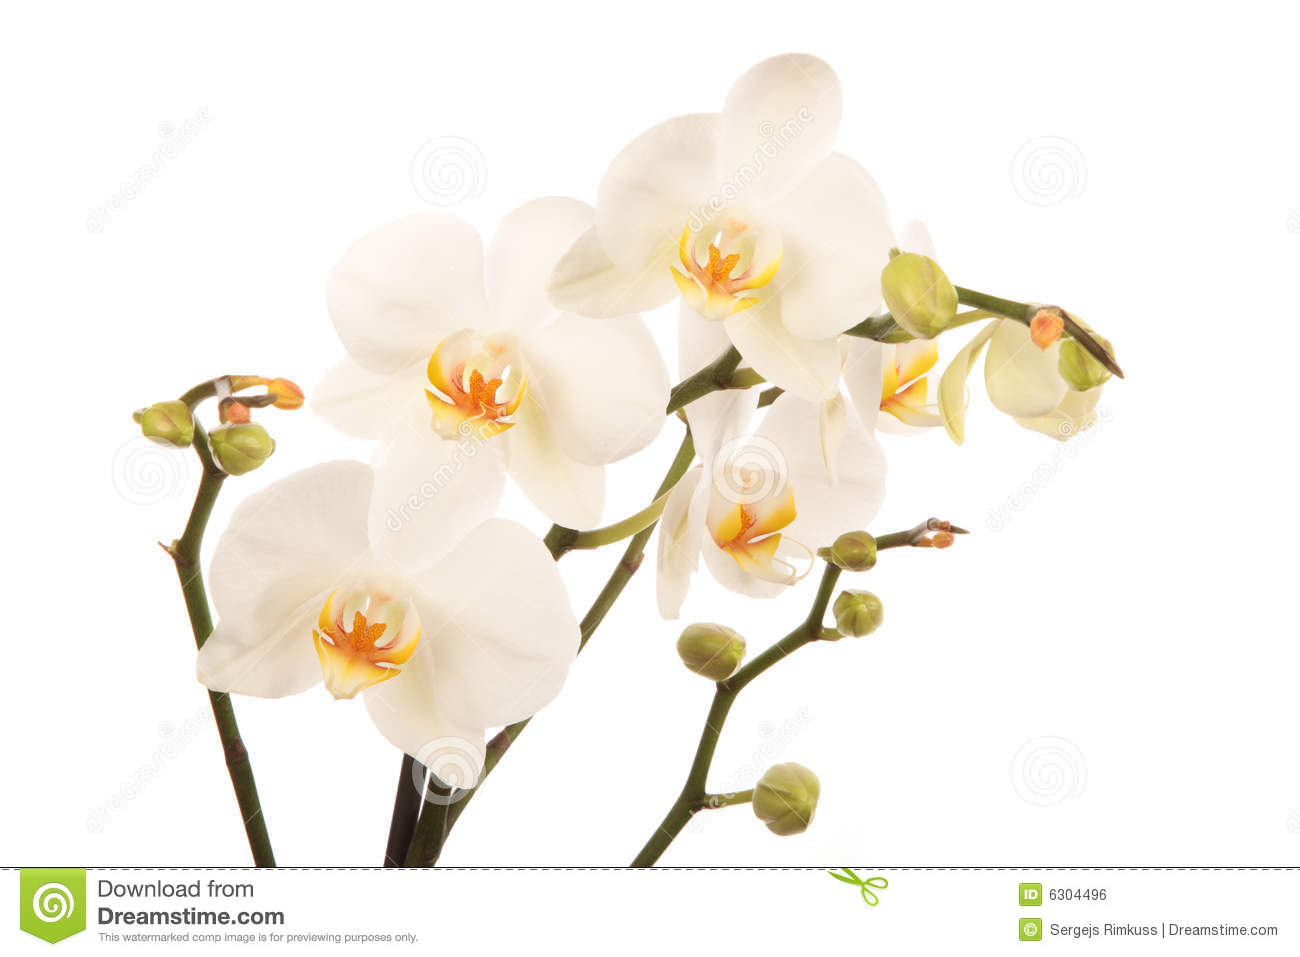 gaeroladid: White Orchid Clipart Images.